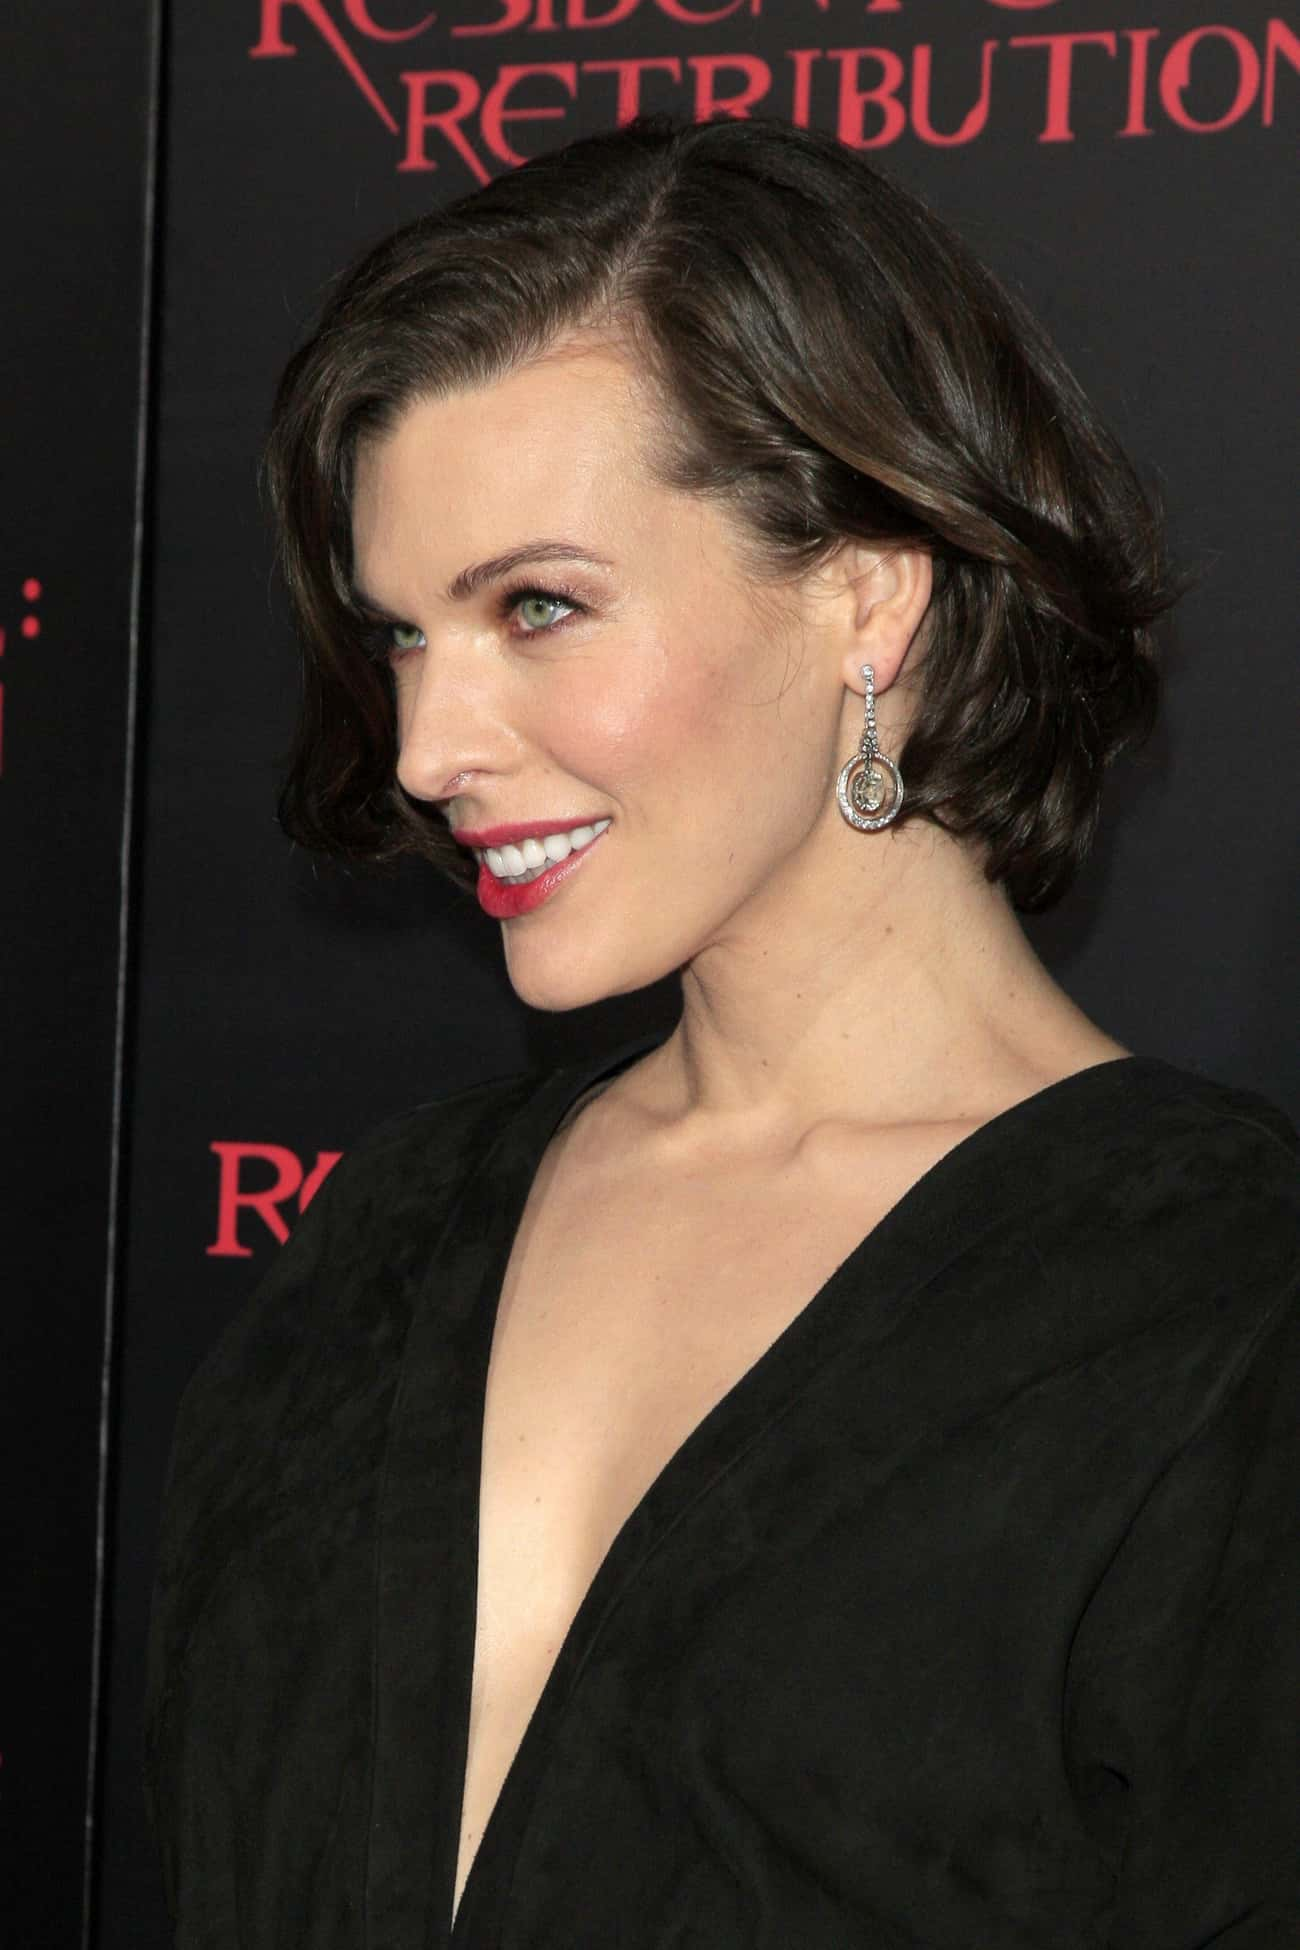 She Performed Nearly All The S is listed (or ranked) 1 on the list 11 Facts That Prove Milla Jovovich Is Just As Much Of A Rogue As The Characters She Plays